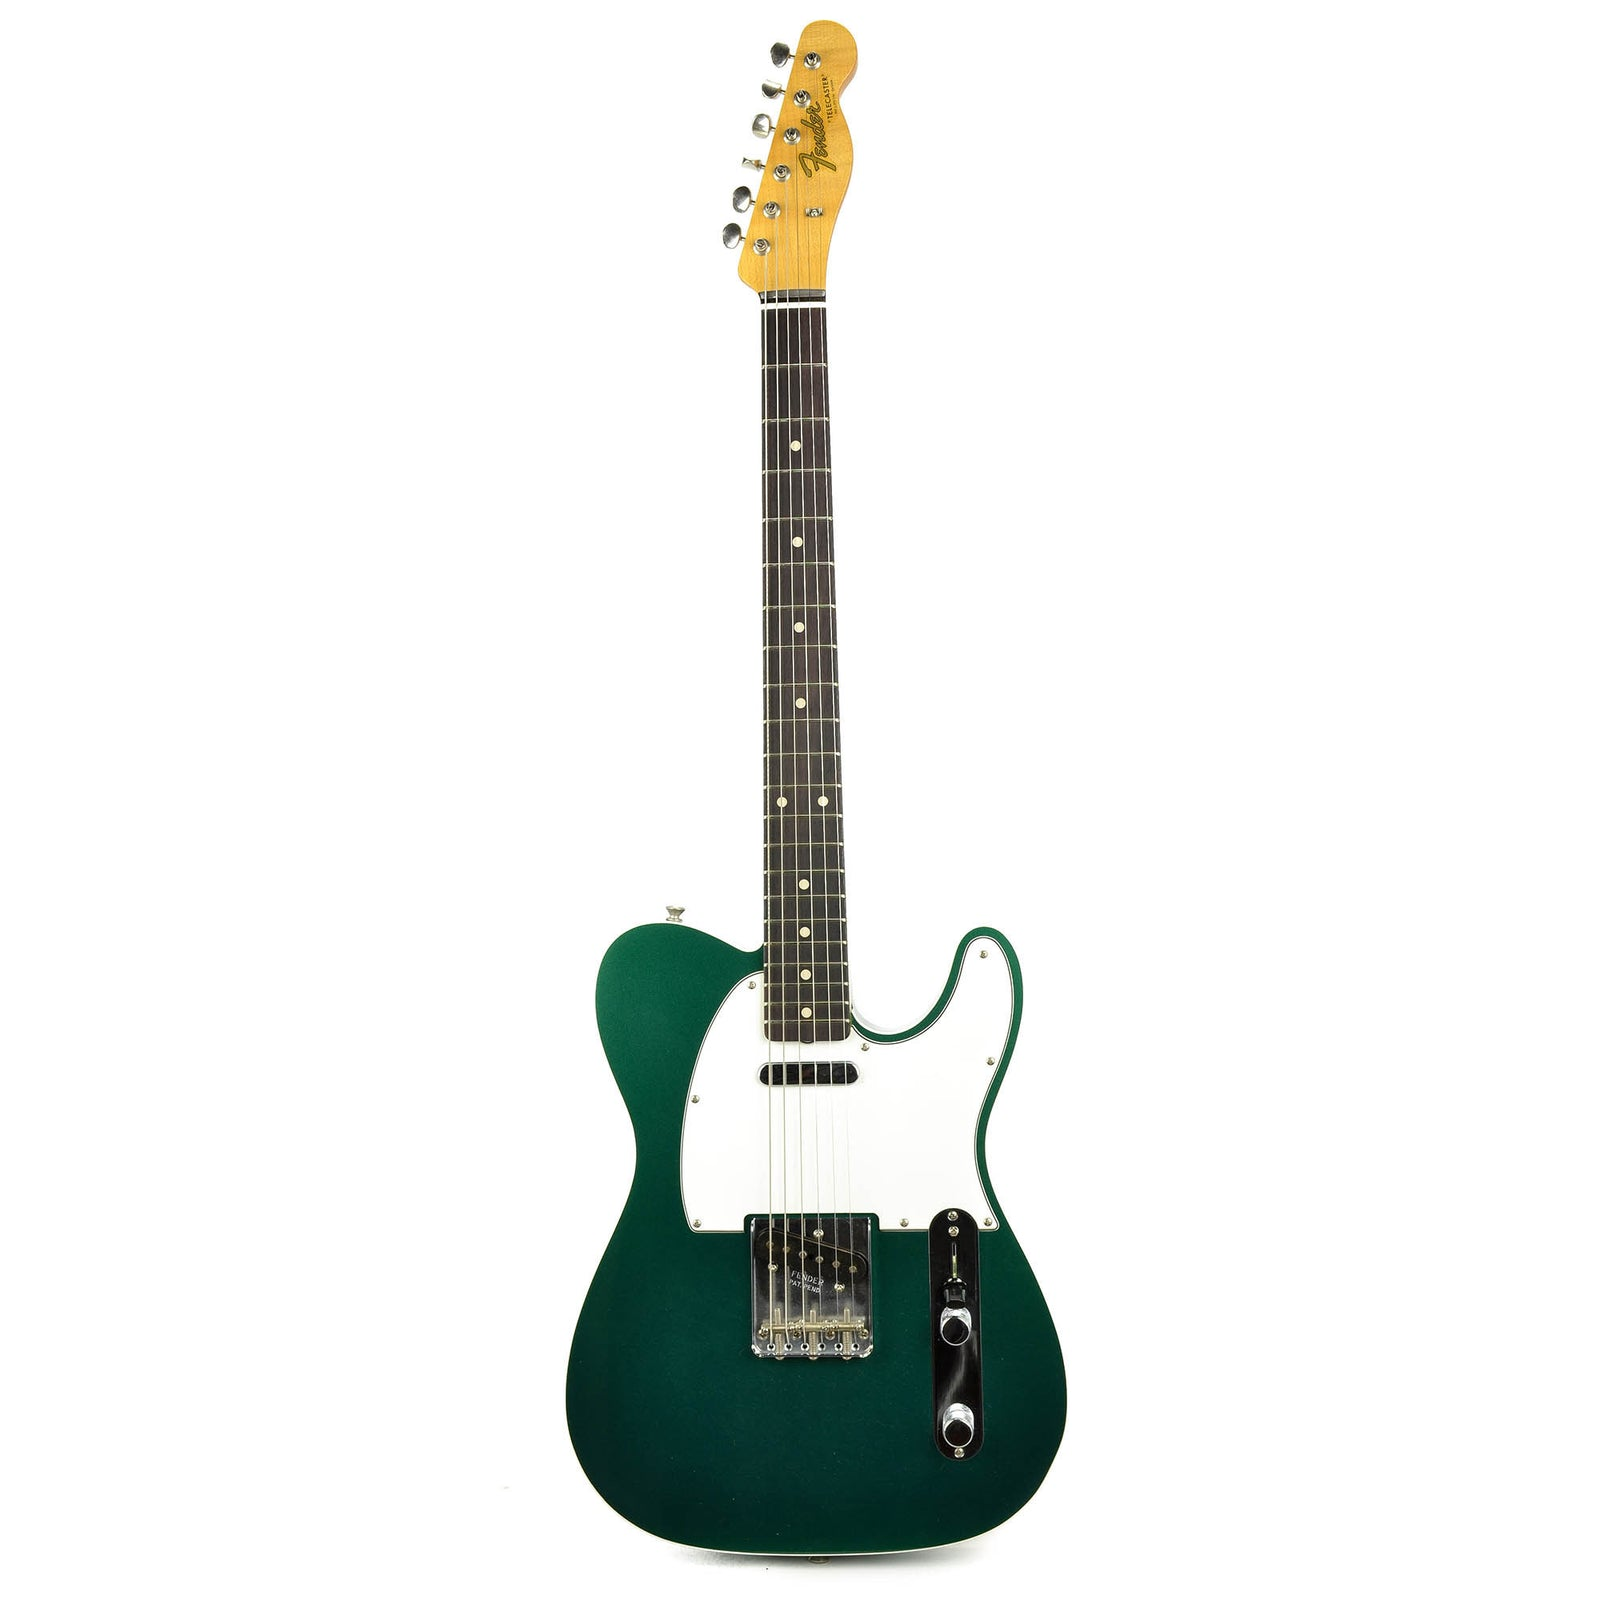 Fender Custom Shop 1960 Telecaster Custom - British Racing Green